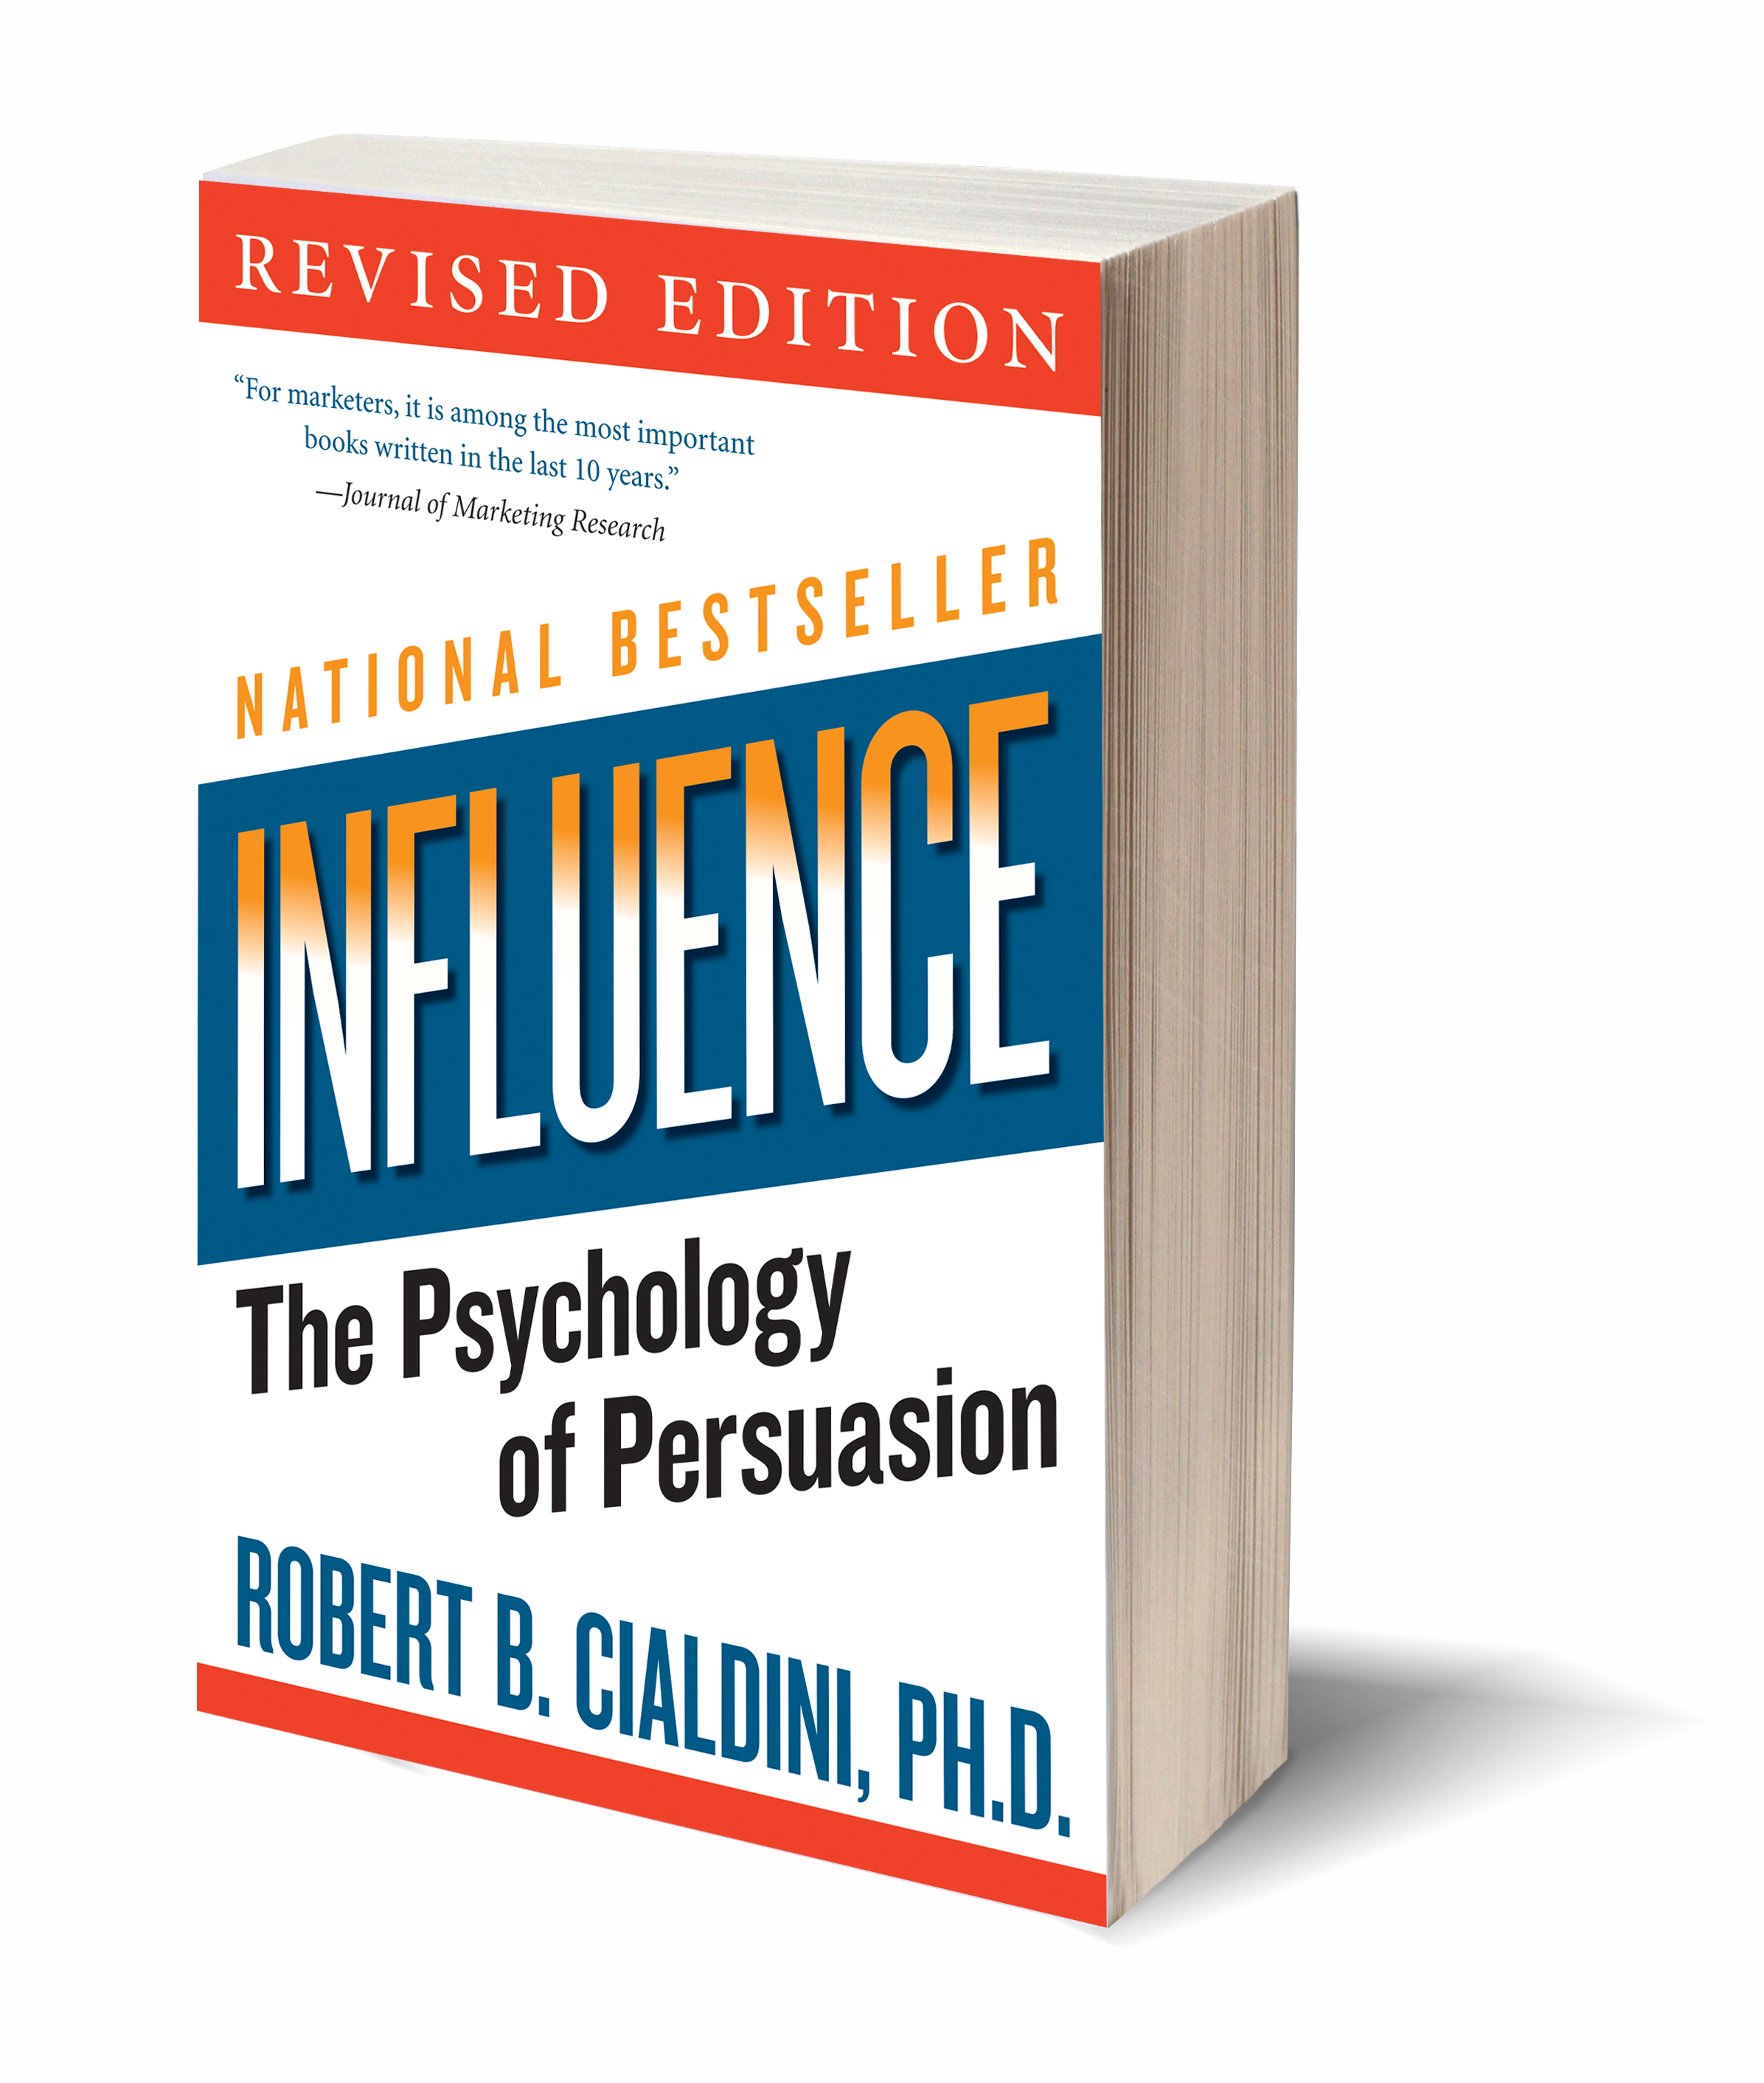 Holiday Read: Laws of Influence, the Psychology of Persuasion by Robert B. Cialdini